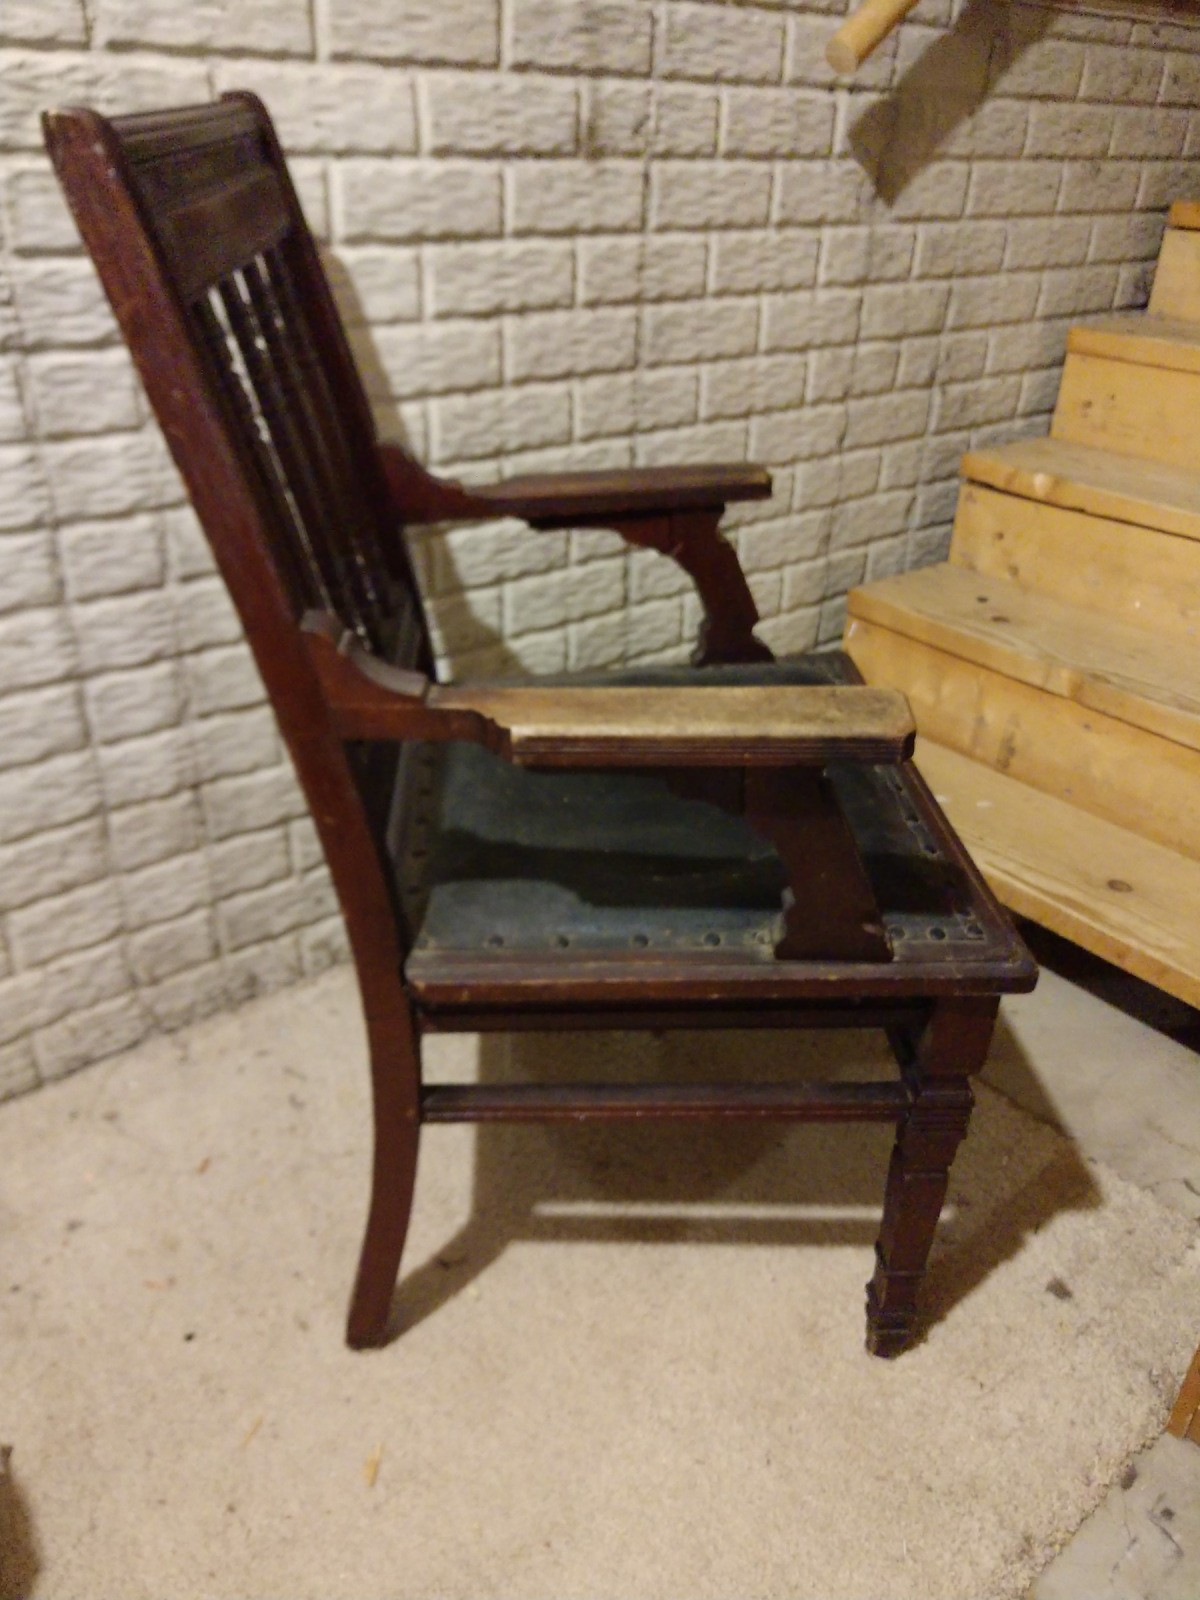 Pleasant Identifying Antique Chairs Thriftyfun Gmtry Best Dining Table And Chair Ideas Images Gmtryco